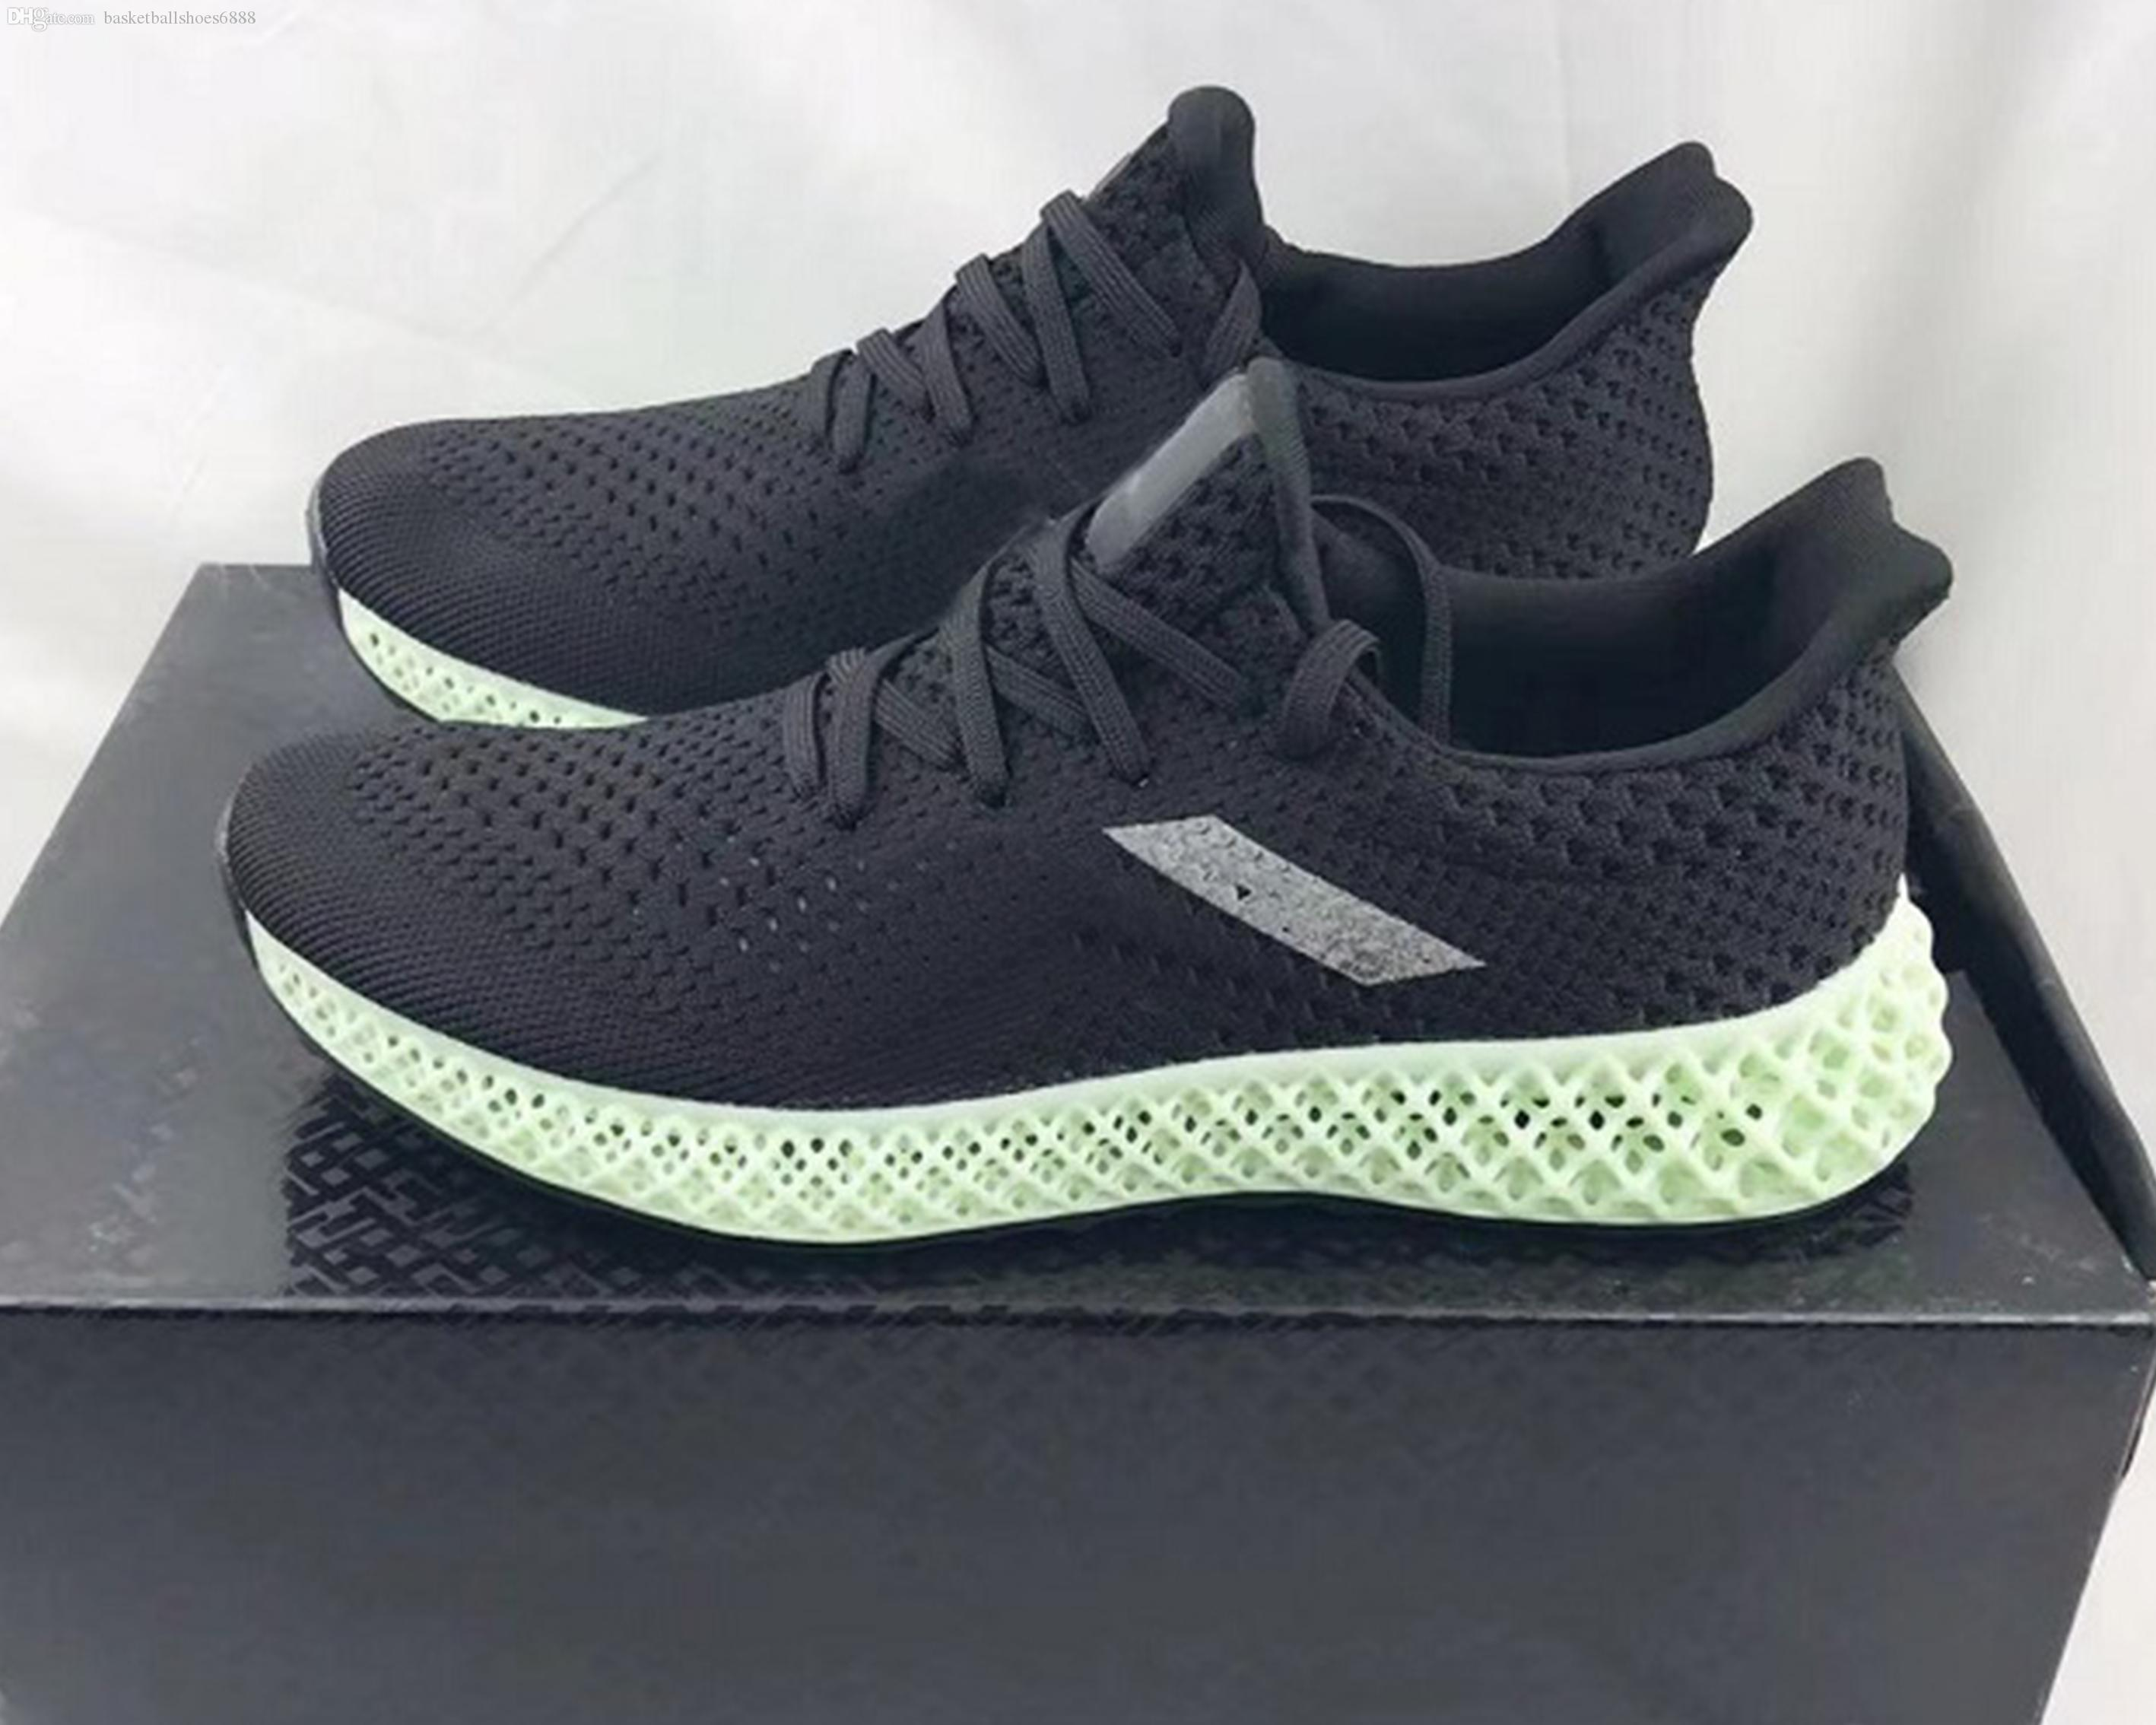 d97c88376492a Wholesale Alphaedge 4D Futurecraft Asw Y 3 Runner Y3 Jogging Shoes Mens  Outdoor Casual Shoe With Box Cheap Shoes Online Summer Shoes From ...